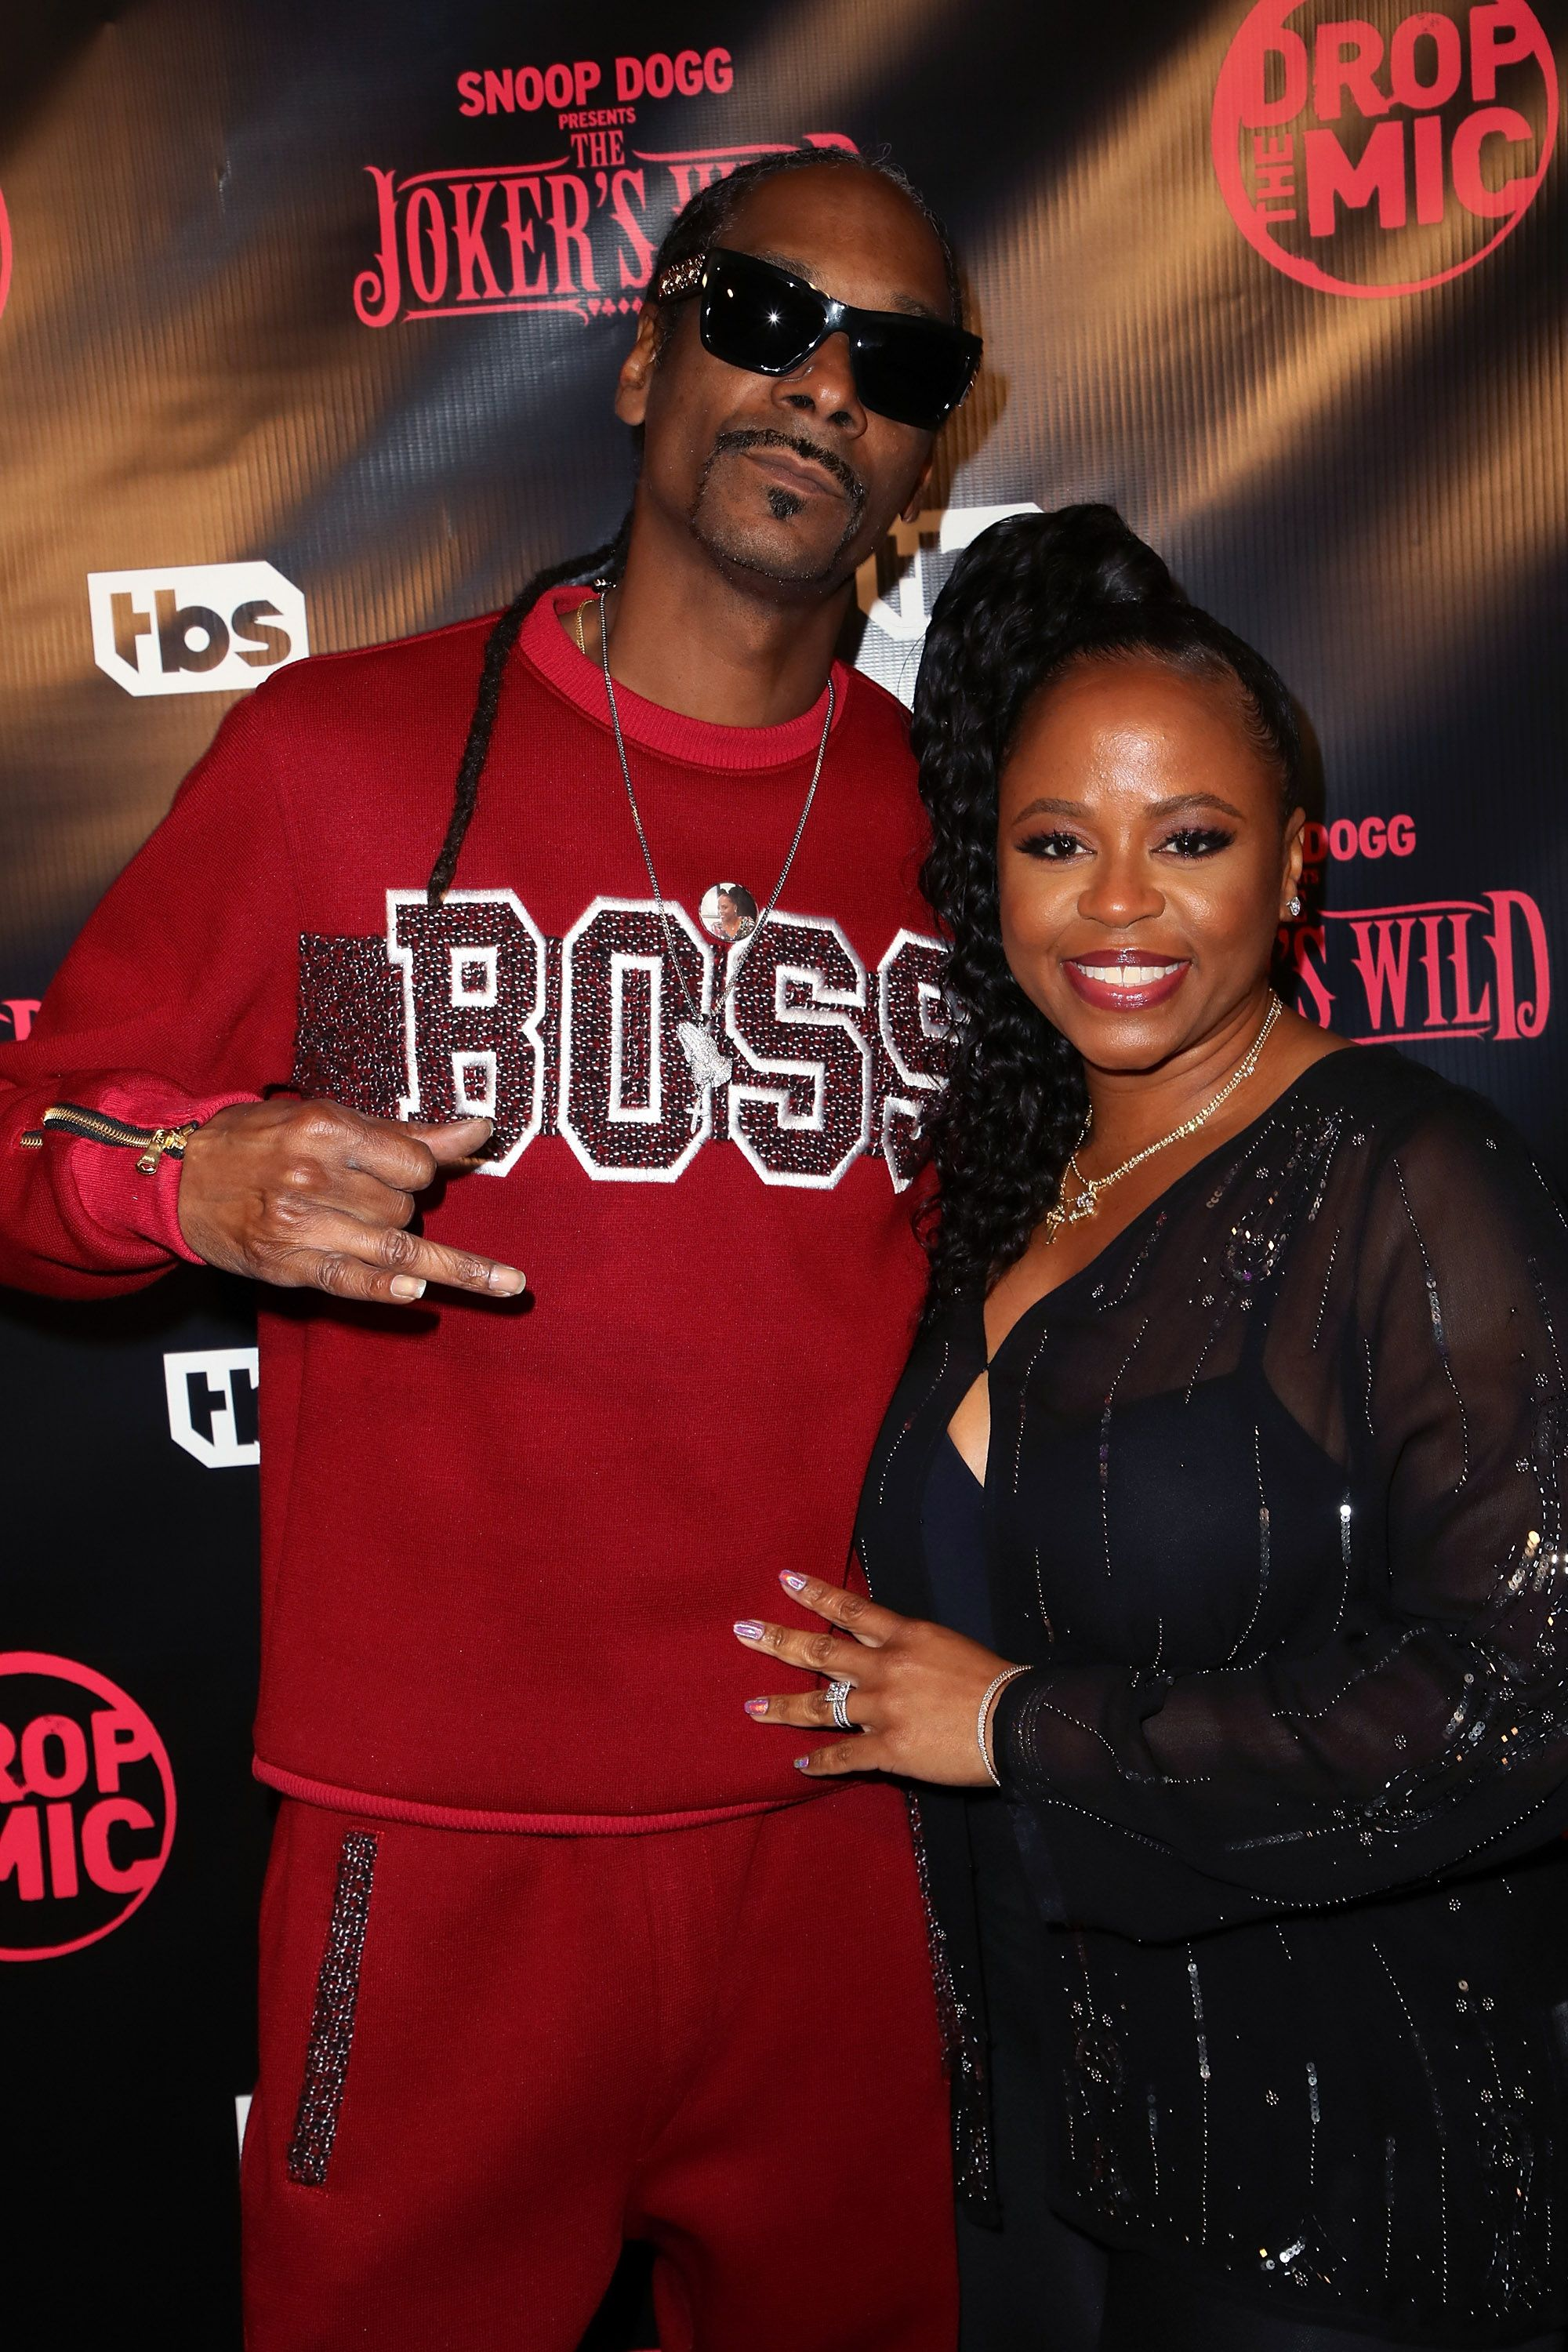 """Snoop Dogg and wife Shante Broadus at the premiere for TBS's """"Drop The Mic"""" and """"The Joker's Wild"""" at The Highlight Room on October 11, 2017 